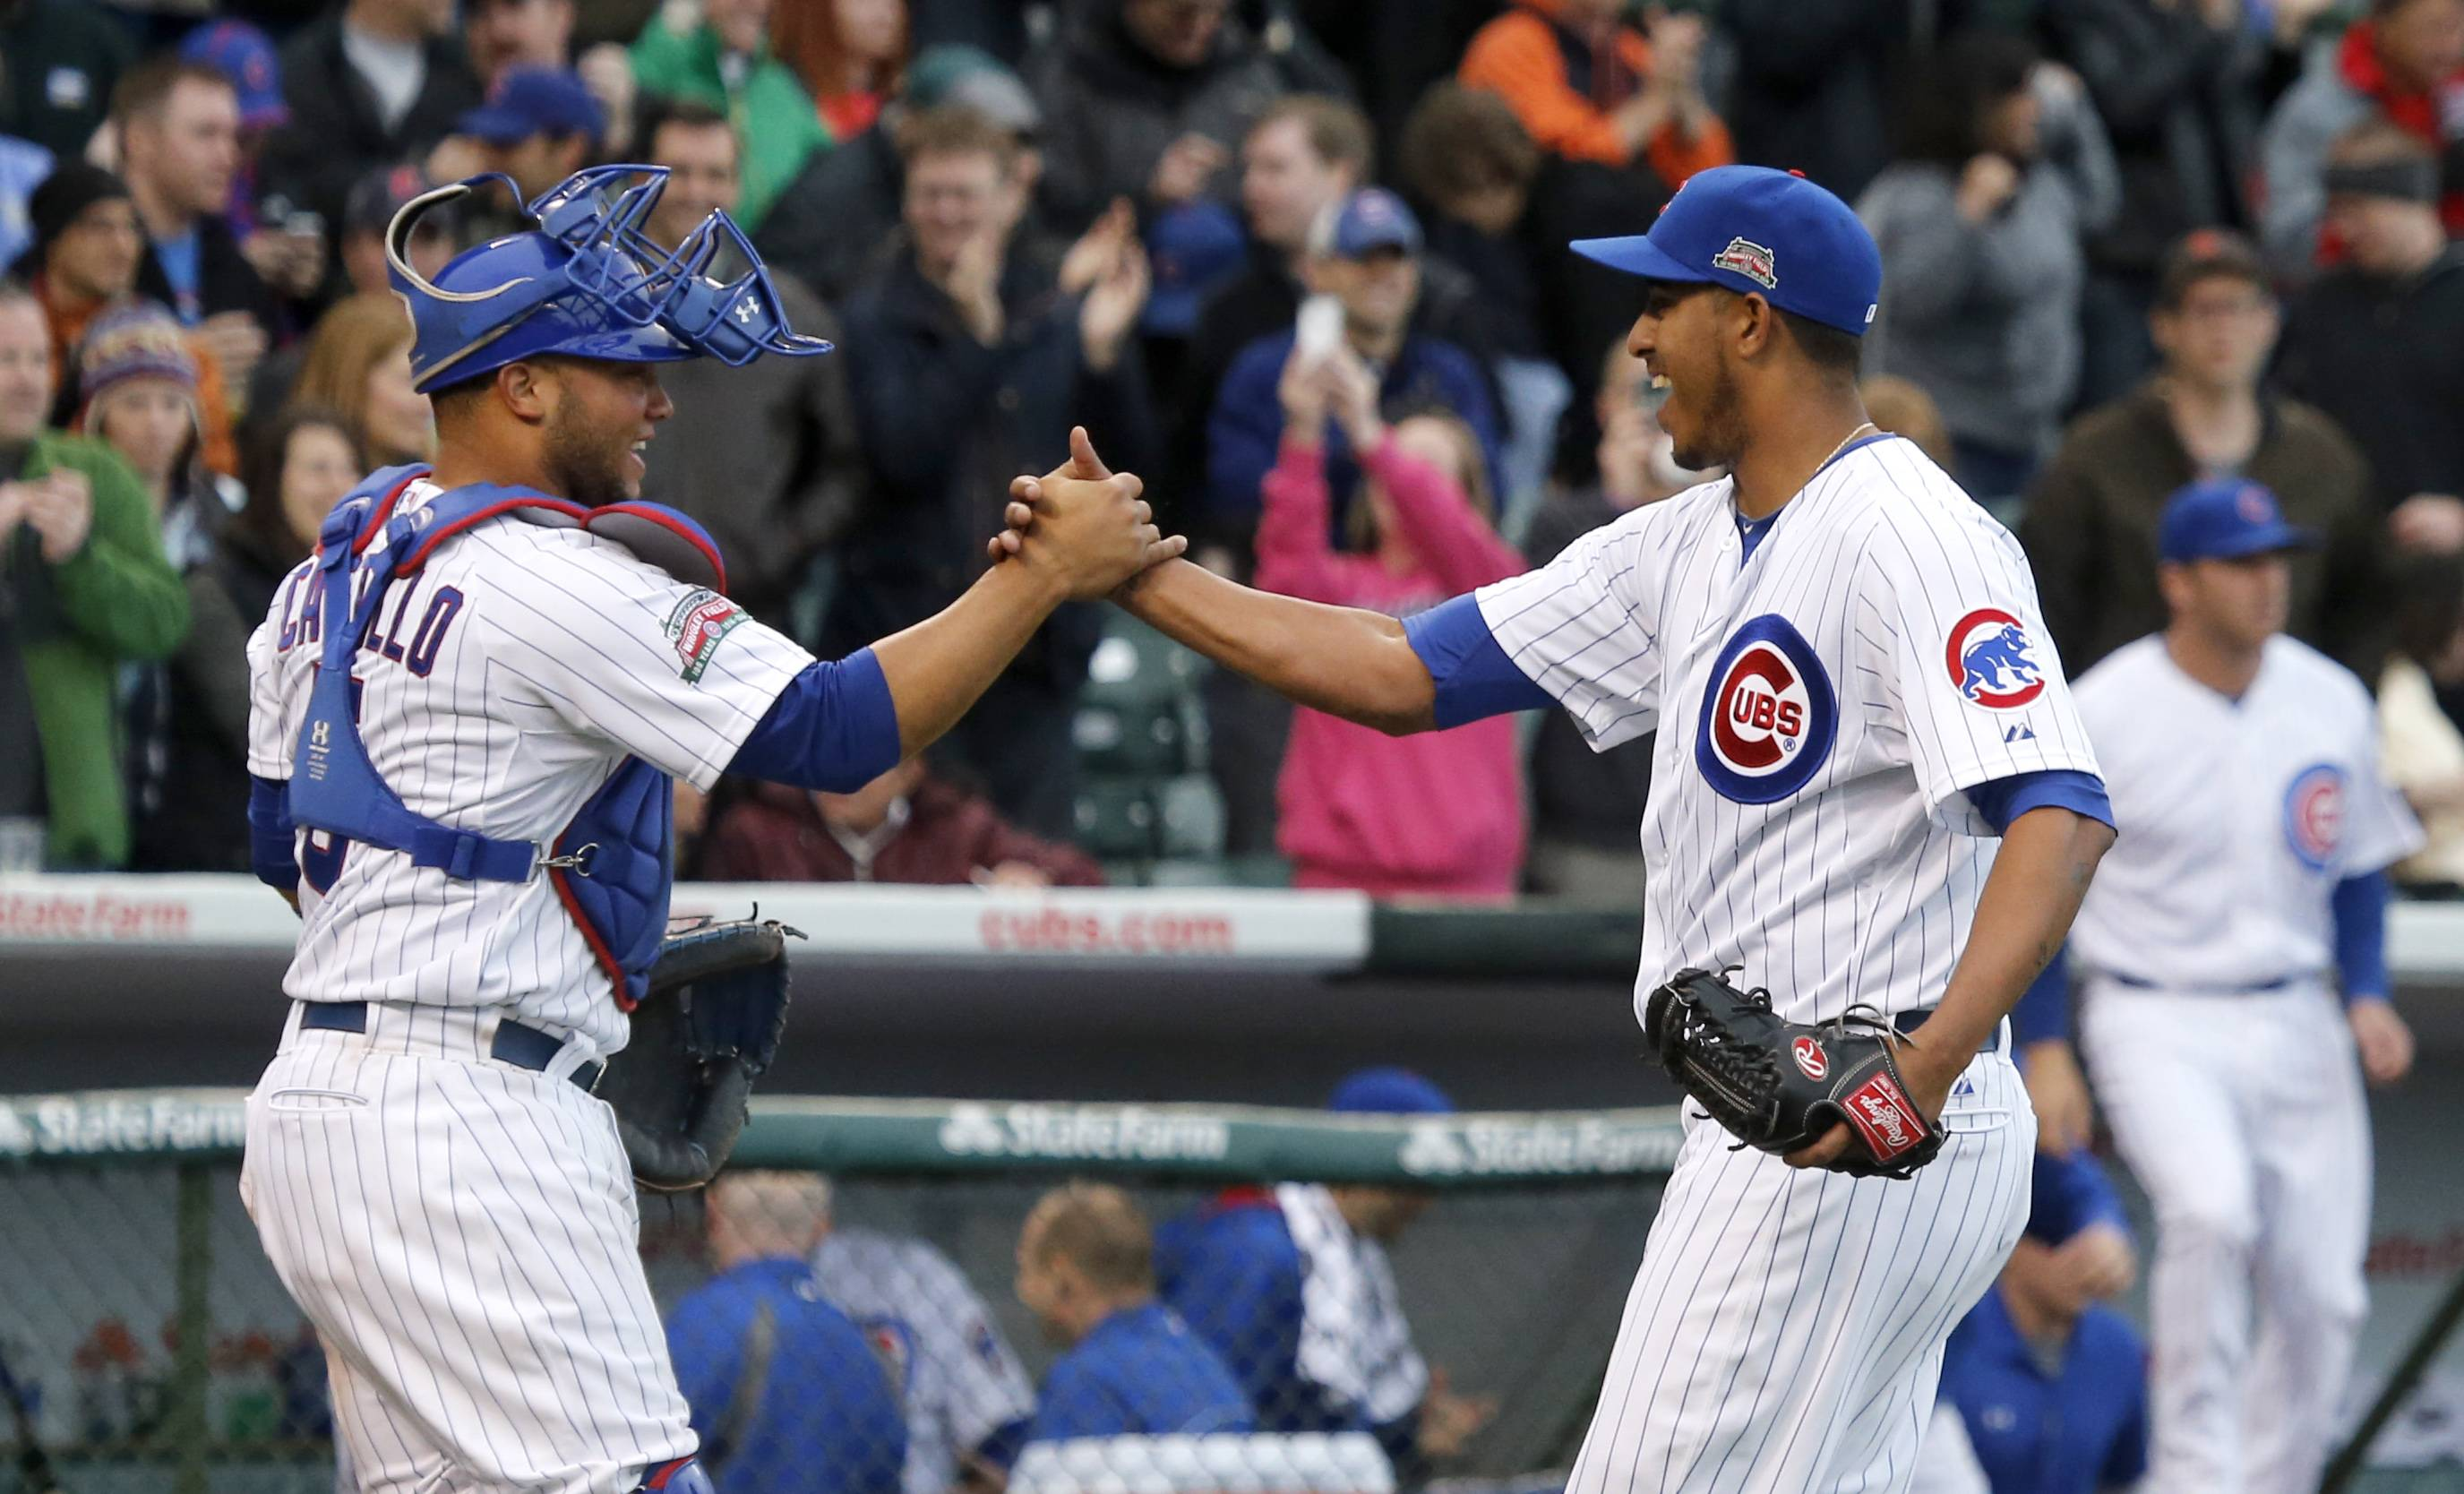 Chicago Cubs relief pitcher Hector Rondon, right, celebrates with catcher Welington Castillo, after their 6-5 win over the St. Louis Cardinals in a baseball game Friday, May 2, 2014, in Chicago. (AP Photo/Charles Rex Arbogast)